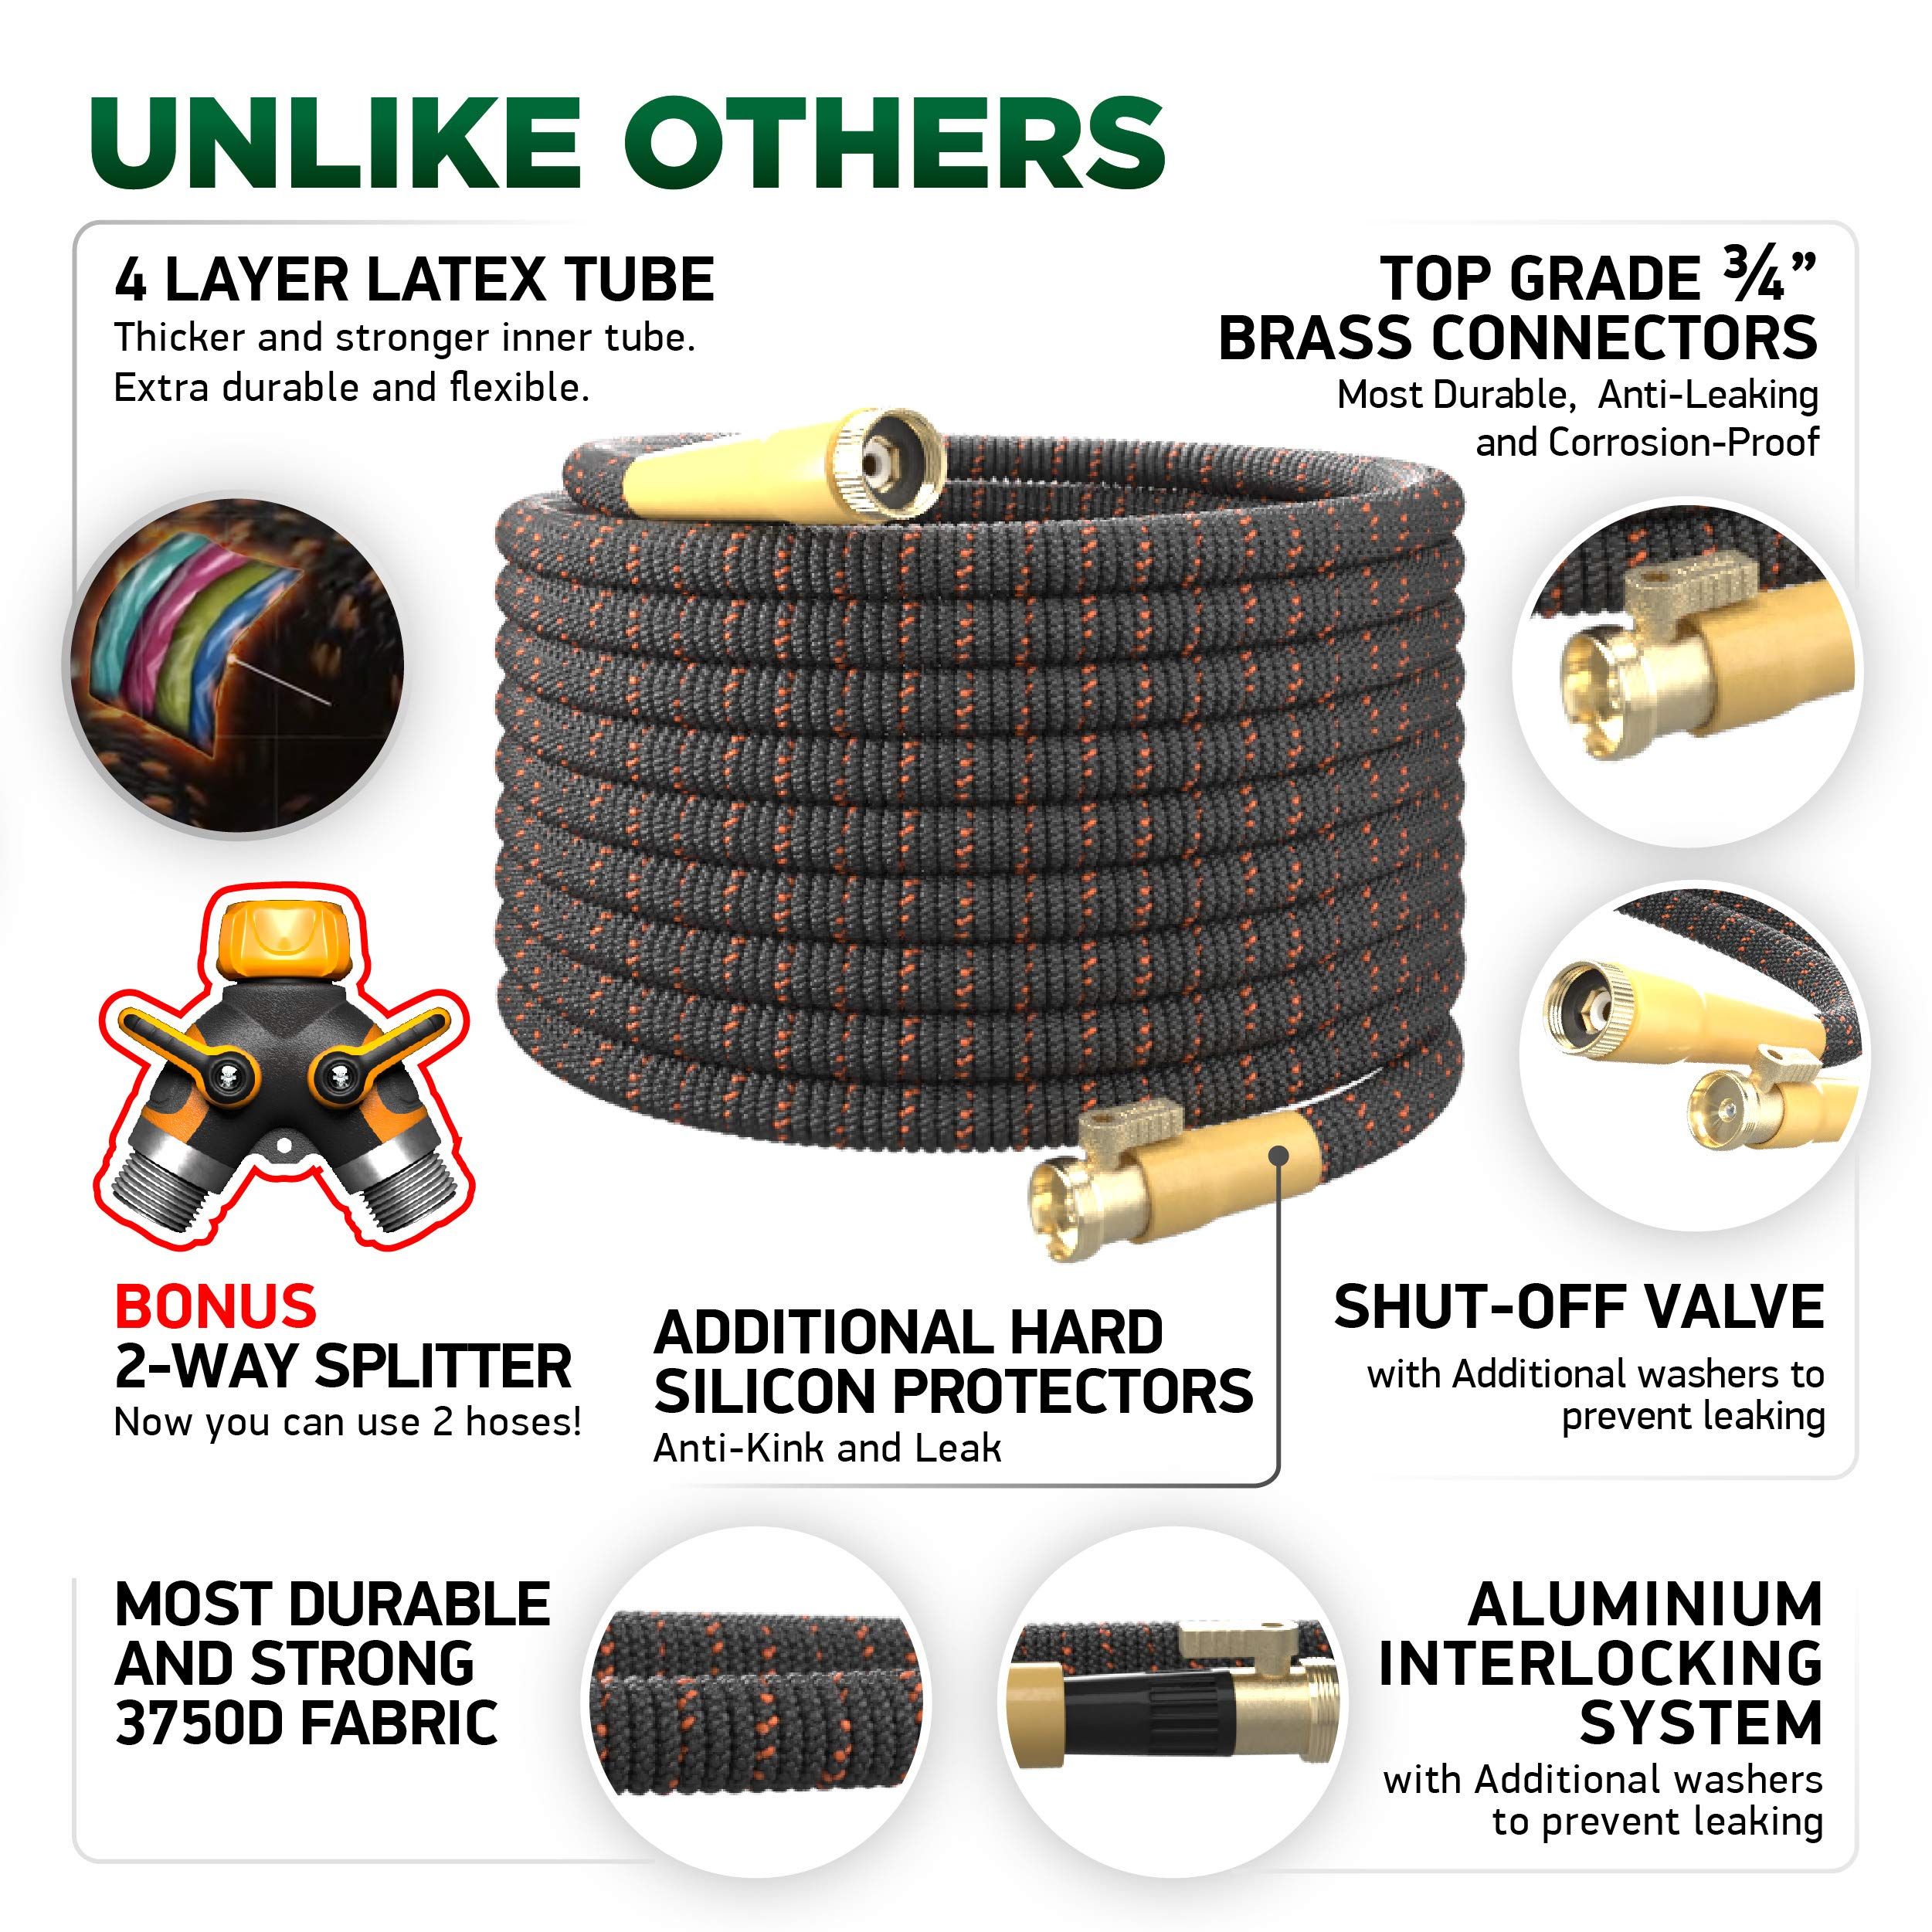 [UPGRADED 2019] 50 Feet Expandable Garden Water Hose - Superior Strength 3750D | 4-Layers Latex | Extra-Strong Brass Connectors | 10-Way Durable Zinc Spray Nozzle, 2-Way Pocket Flexible Splitter by TBI Pro (Image #2)